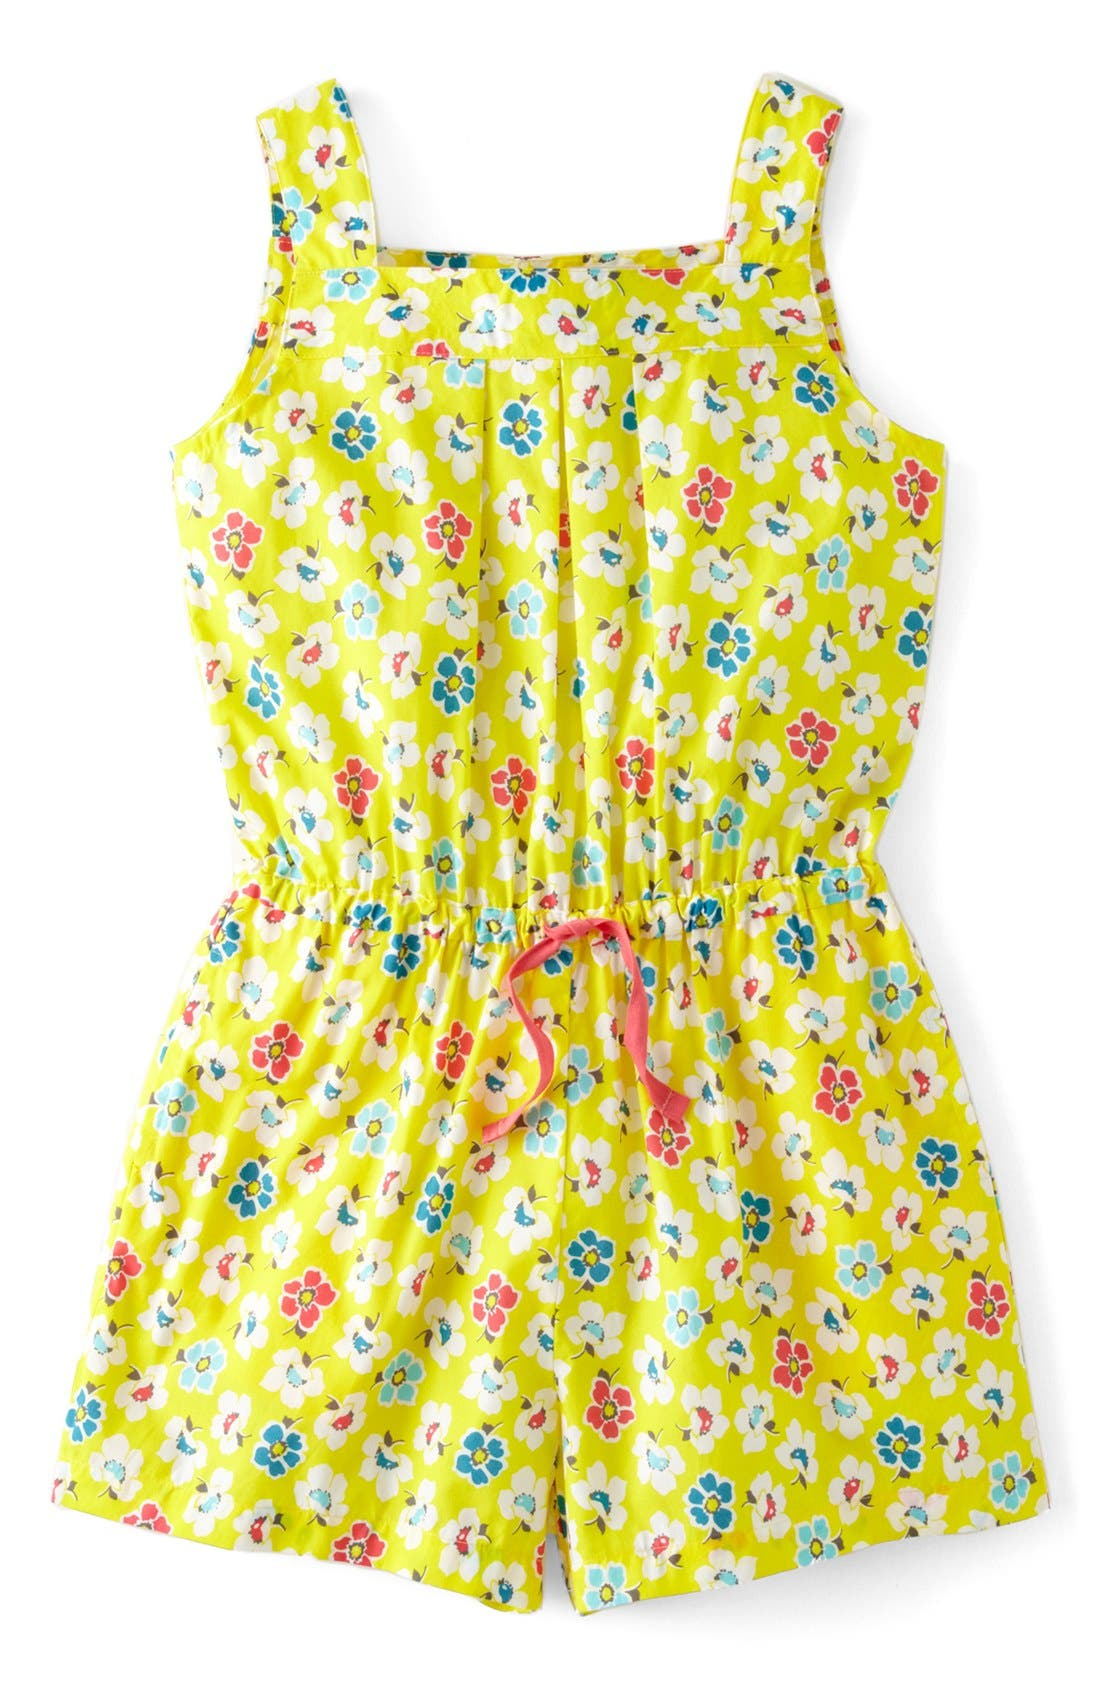 Main Image - Mini Boden 'Pretty' Romper (Little Girls & Big Girls)